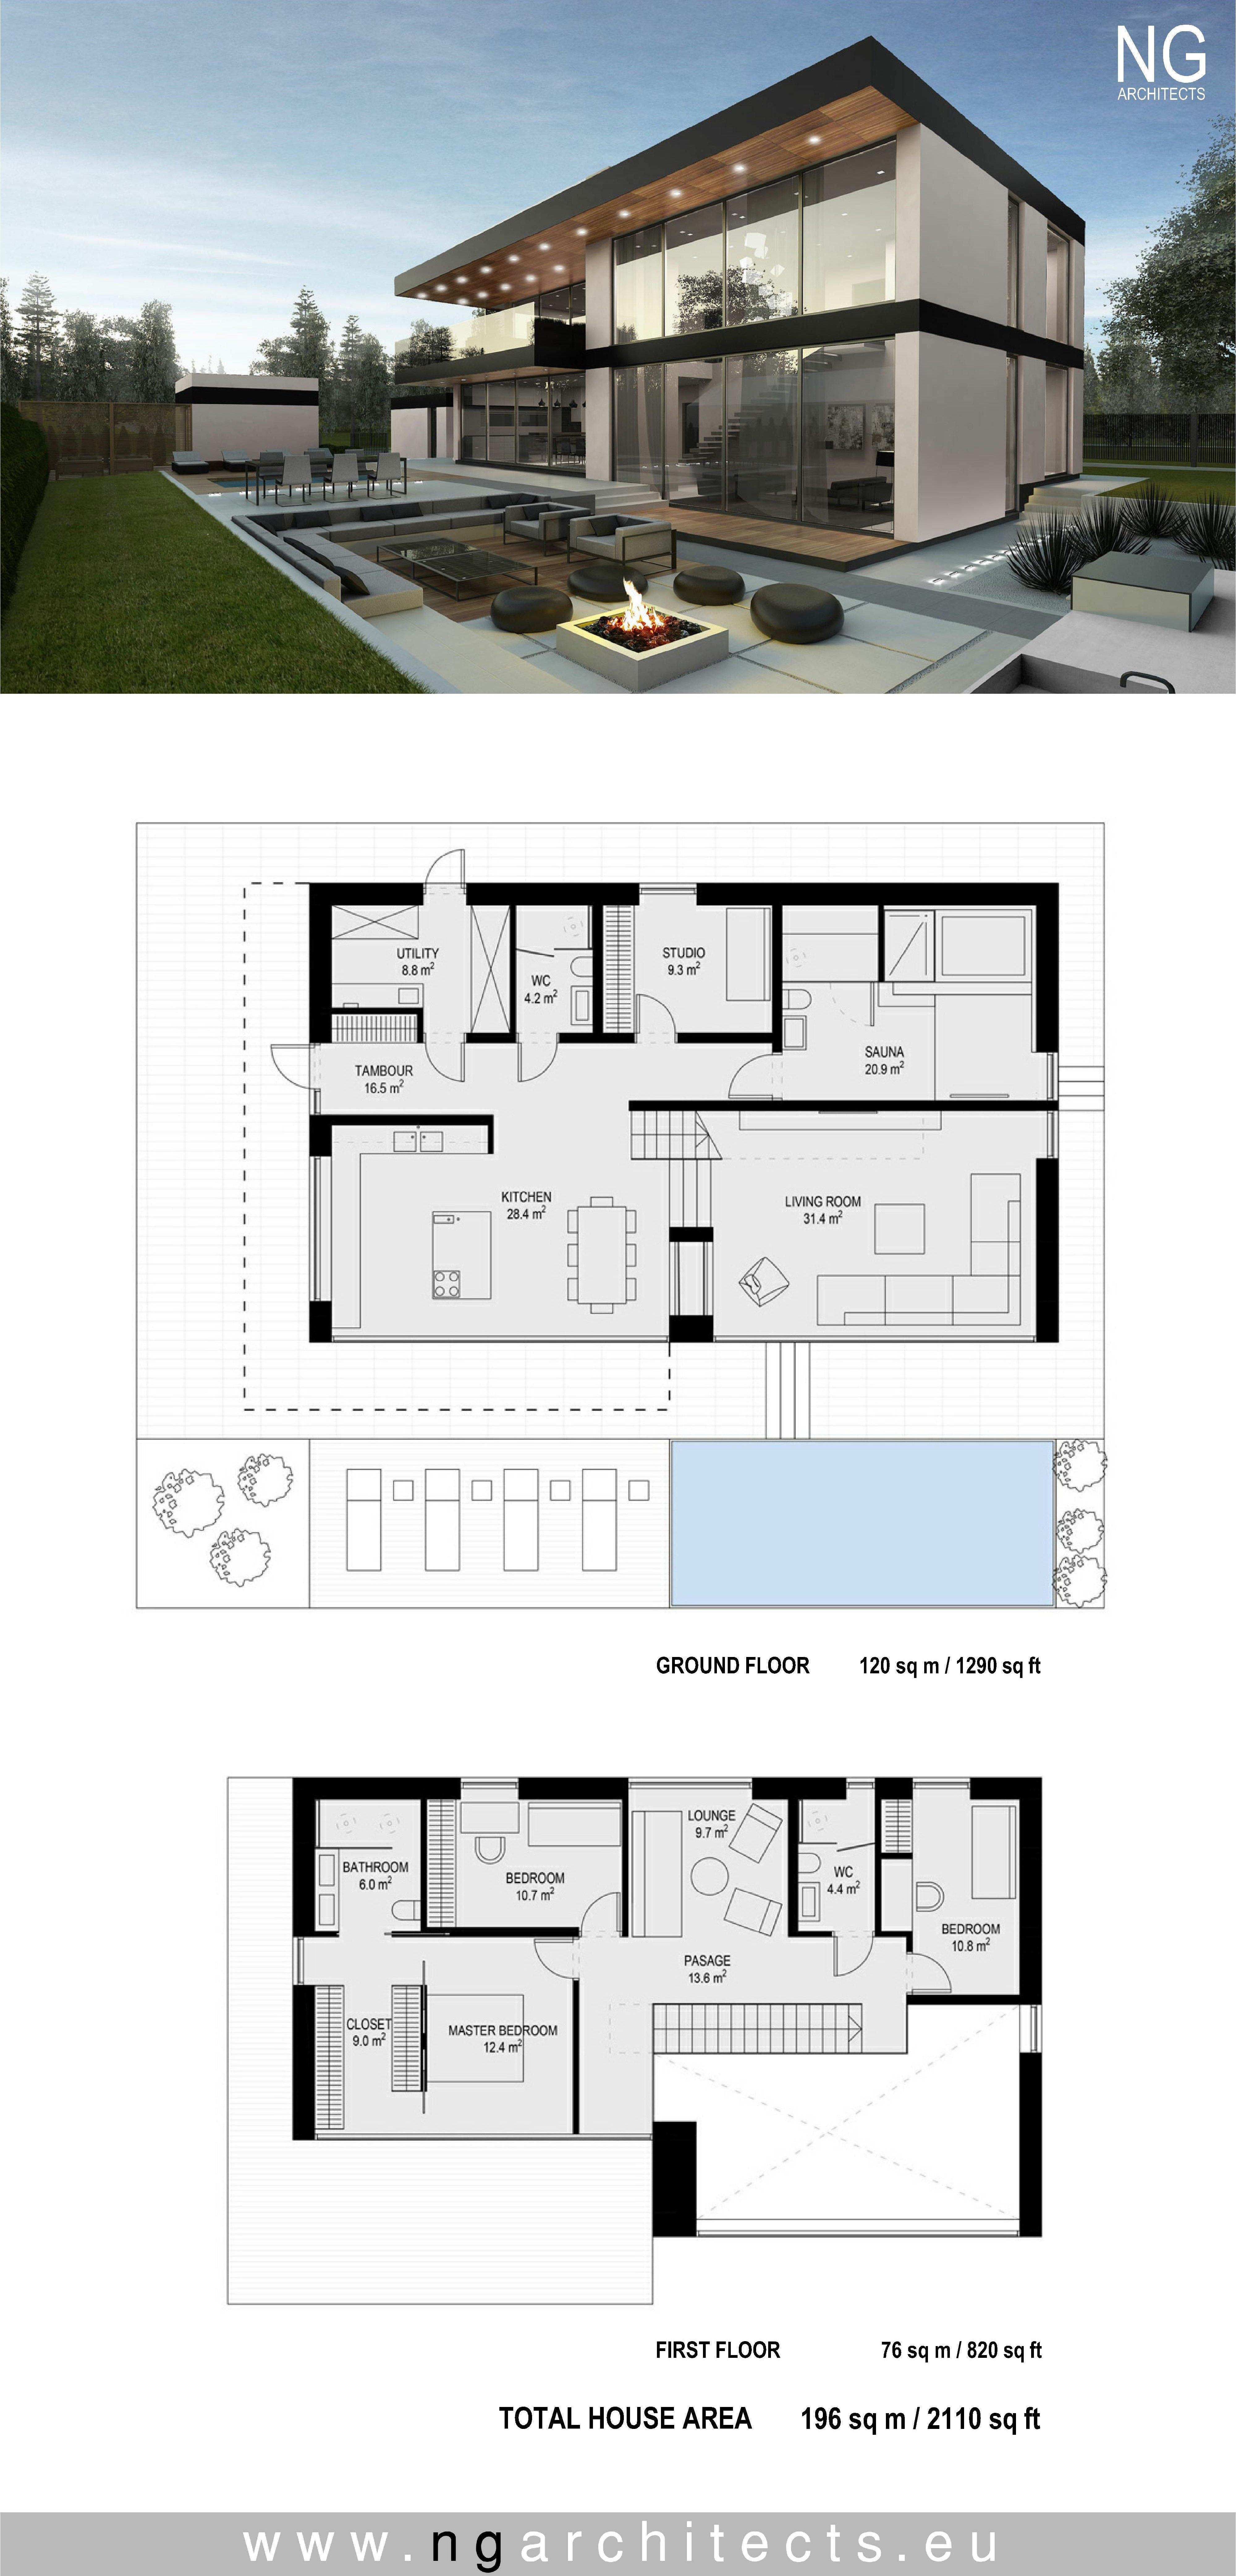 Villa Plans And Designs 2020 Arsitektur Rumah Desain Rumah Modern House Blueprints